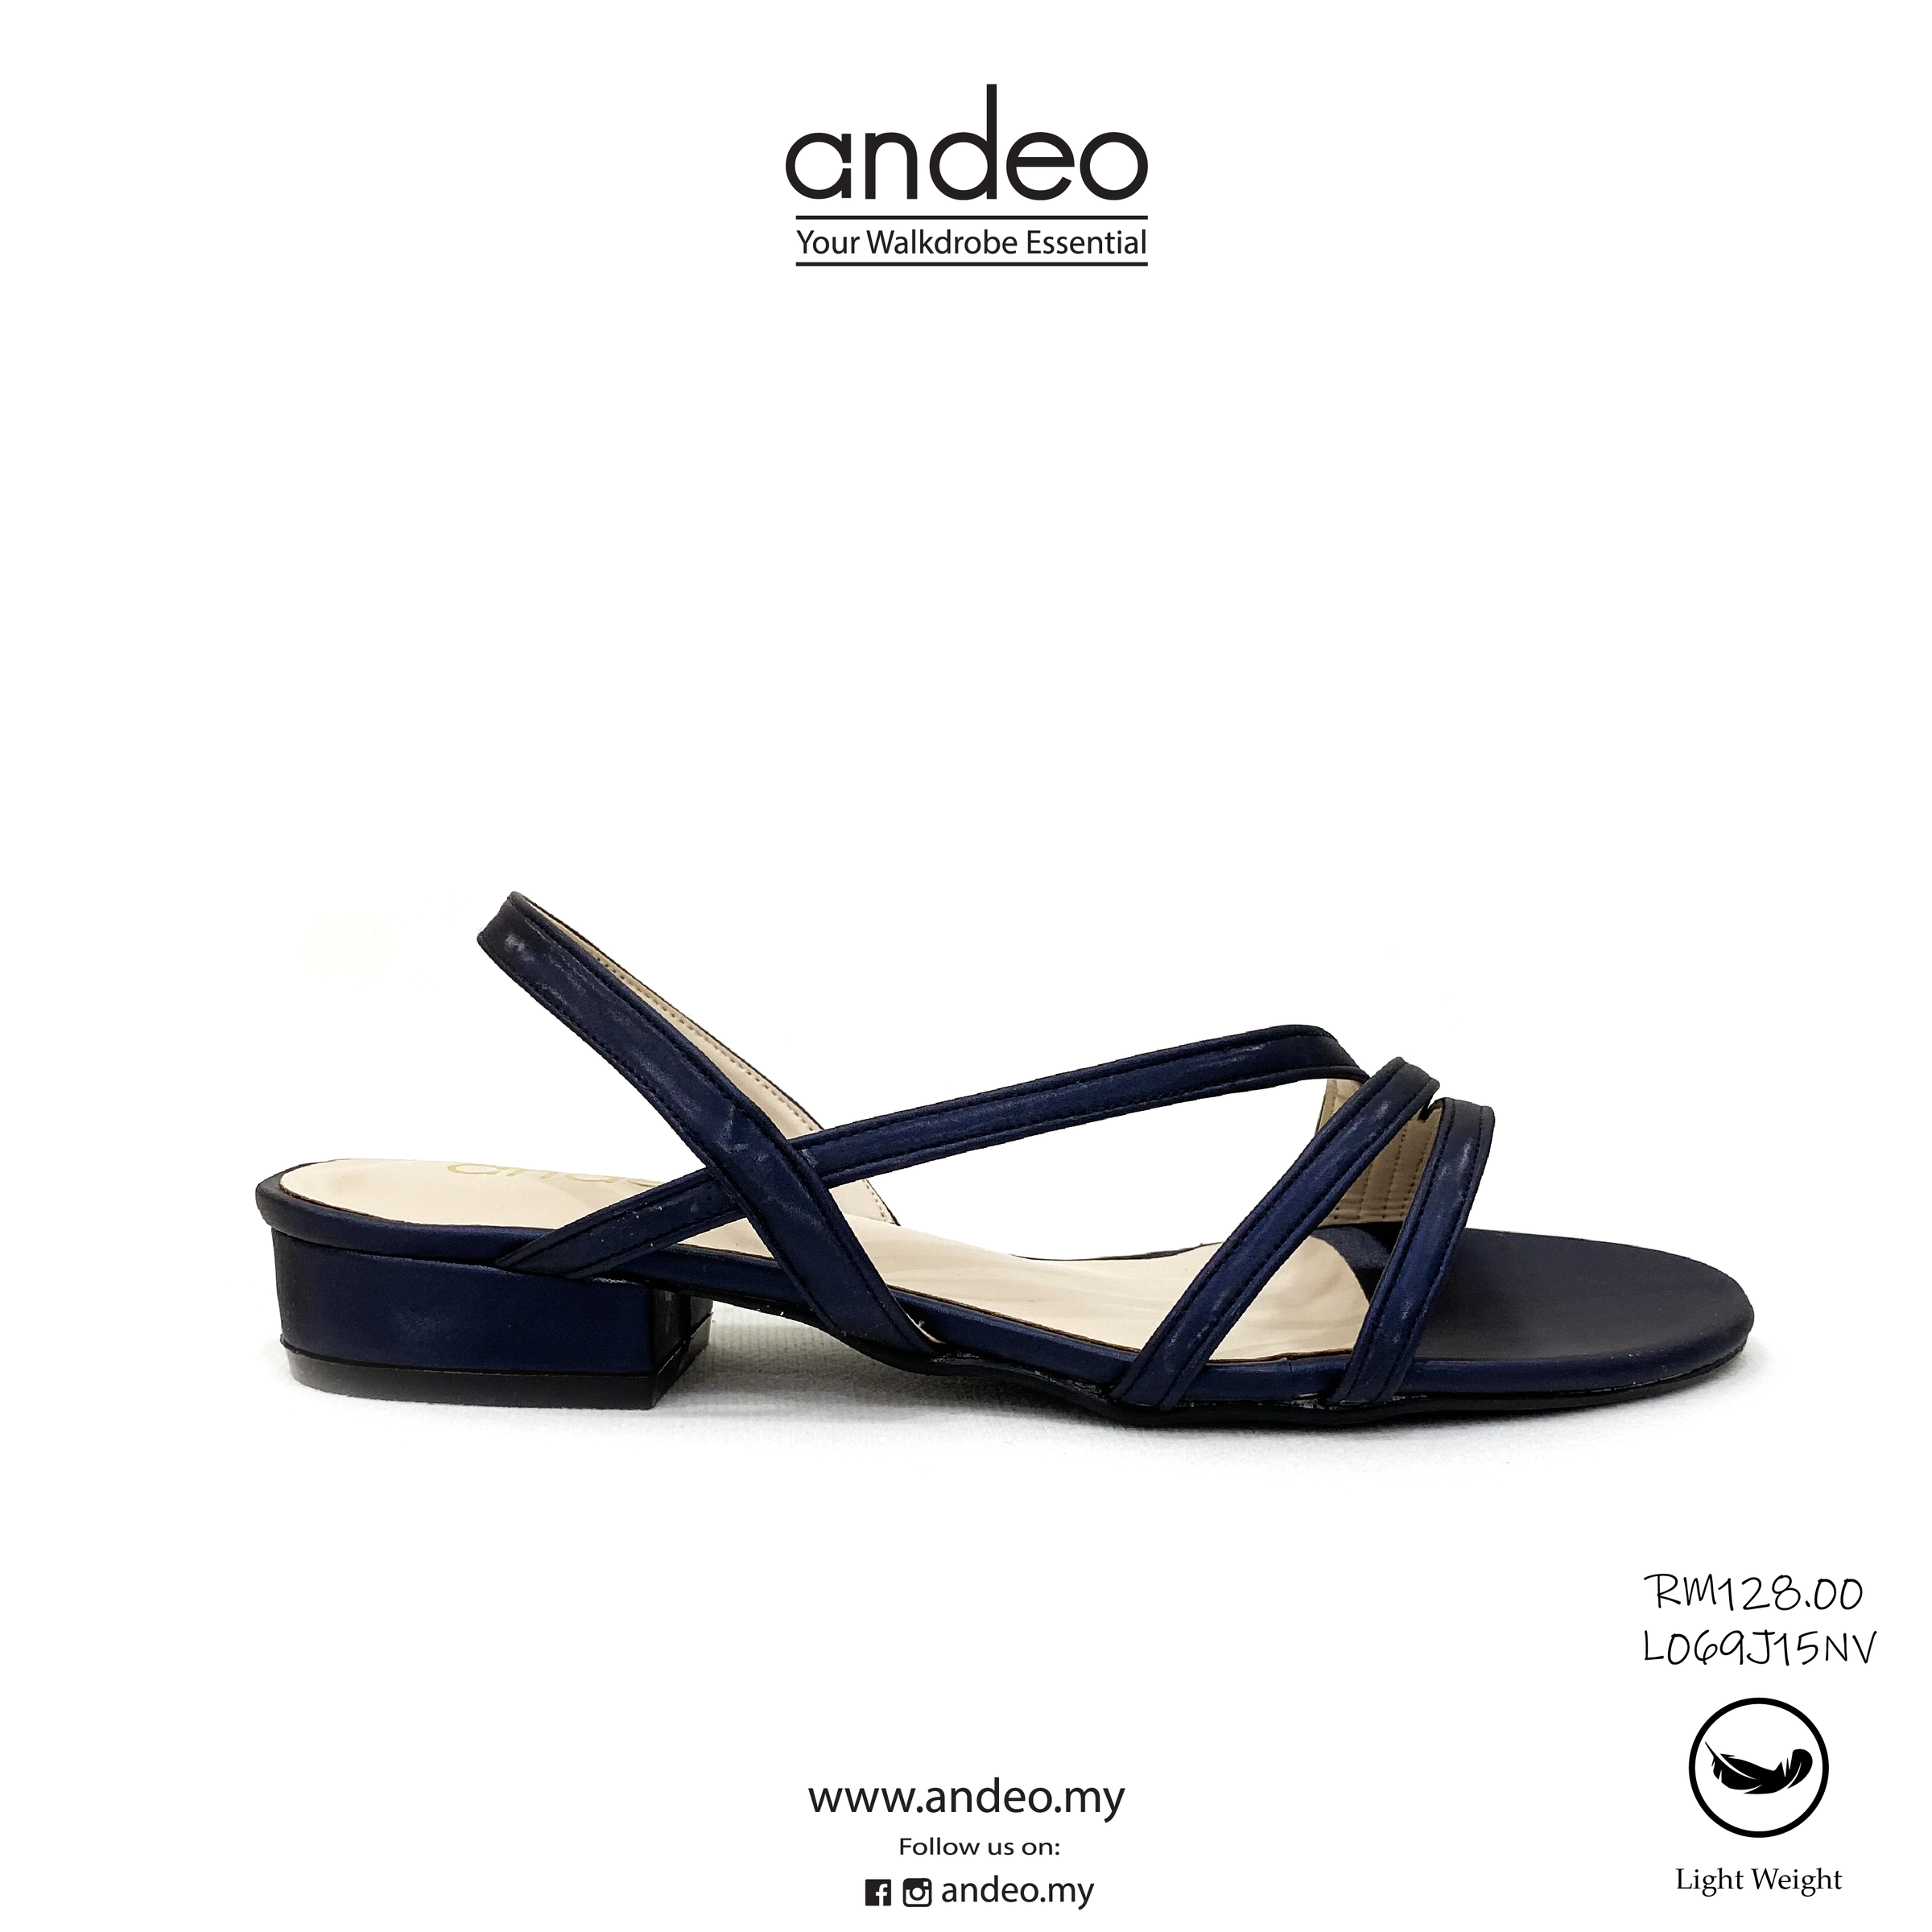 ANDEO FB PRODUCT L069J15-02.png